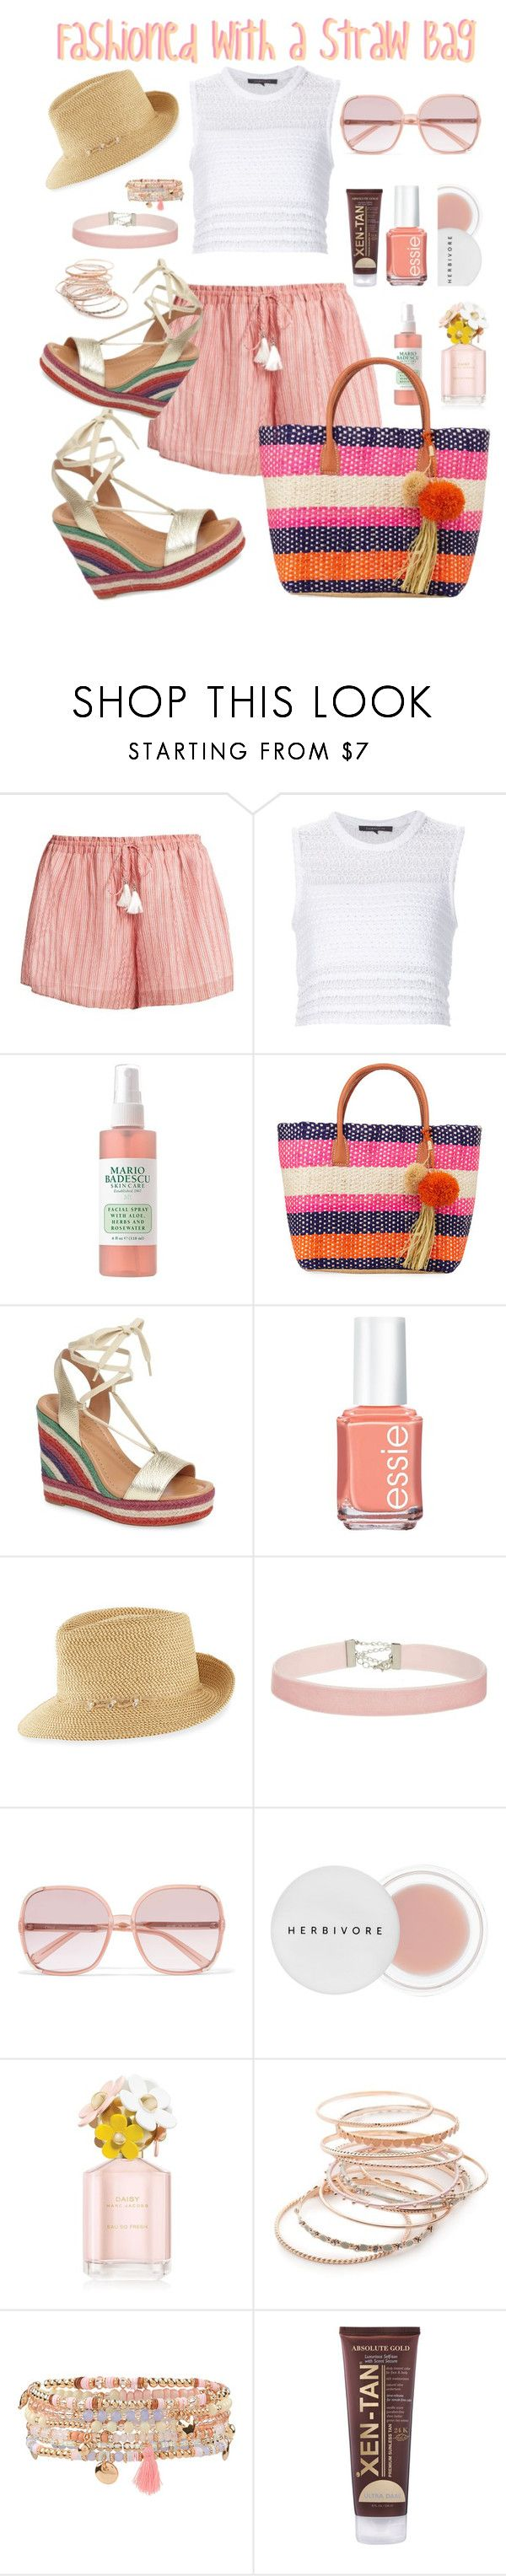 """""""Fashioned with a Straw Bag"""" by michele-nyc ❤ liked on Polyvore featuring Zimmermann, Thakoon, Buji Baja, Kate Spade, Essie, Eric Javits, Miss Selfridge, Chloé, Herbivore and Marc Jacobs"""